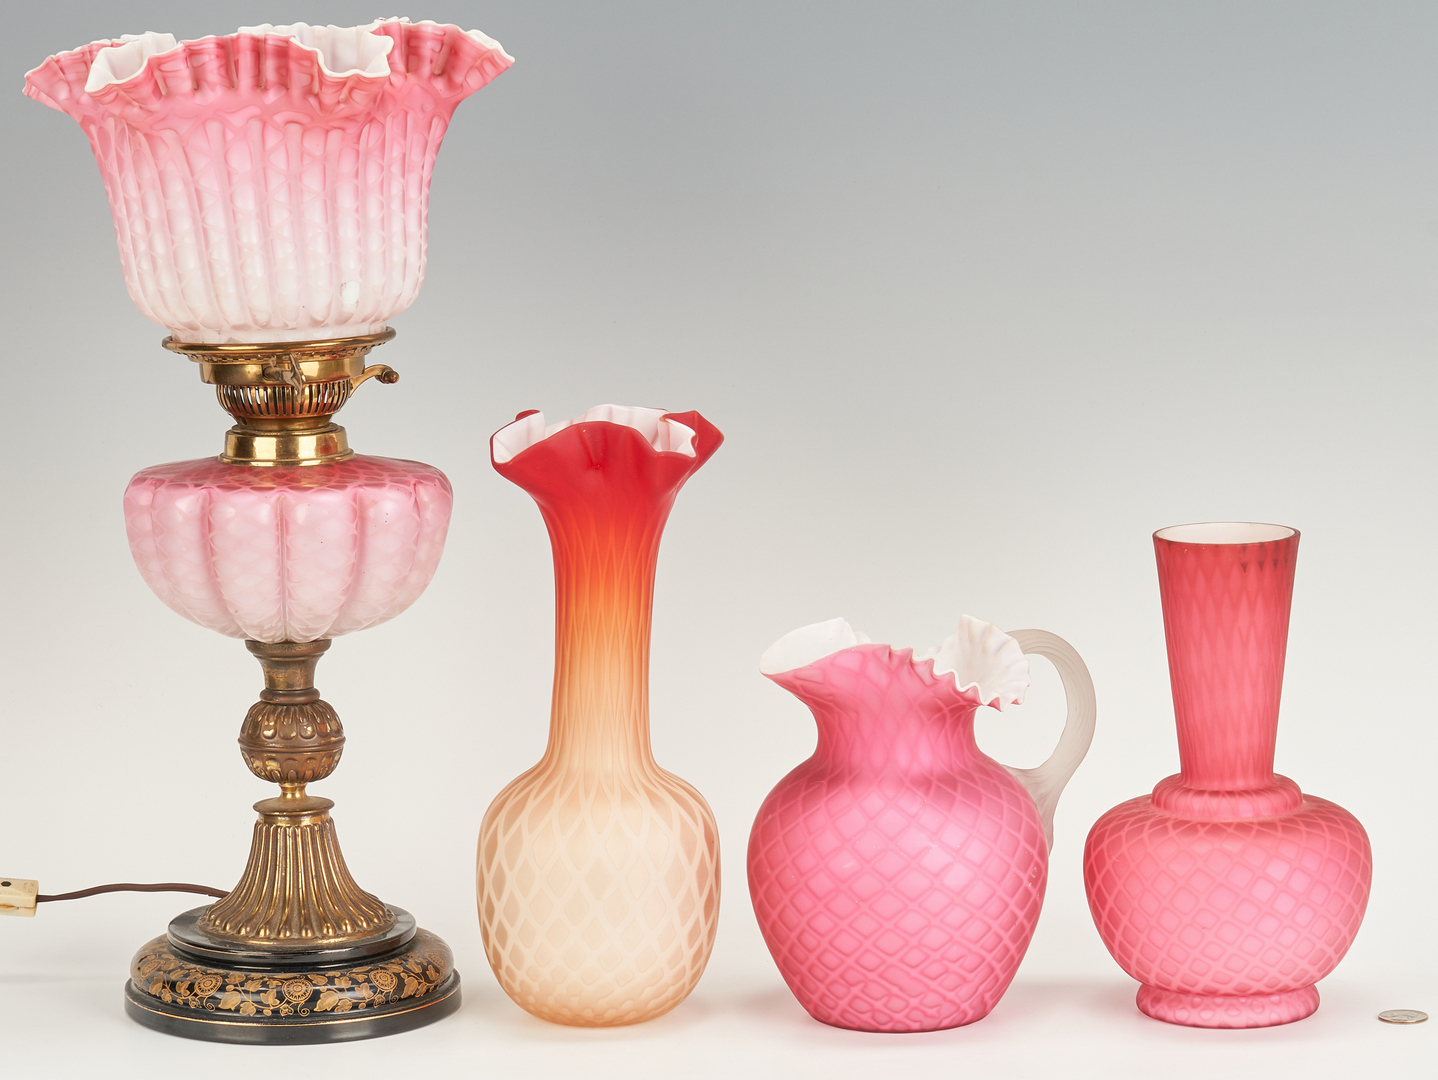 Lot 464: 5 Art Glass/Satin Glass Items, incl. Epergne, Lamp, Pitcher, Vases